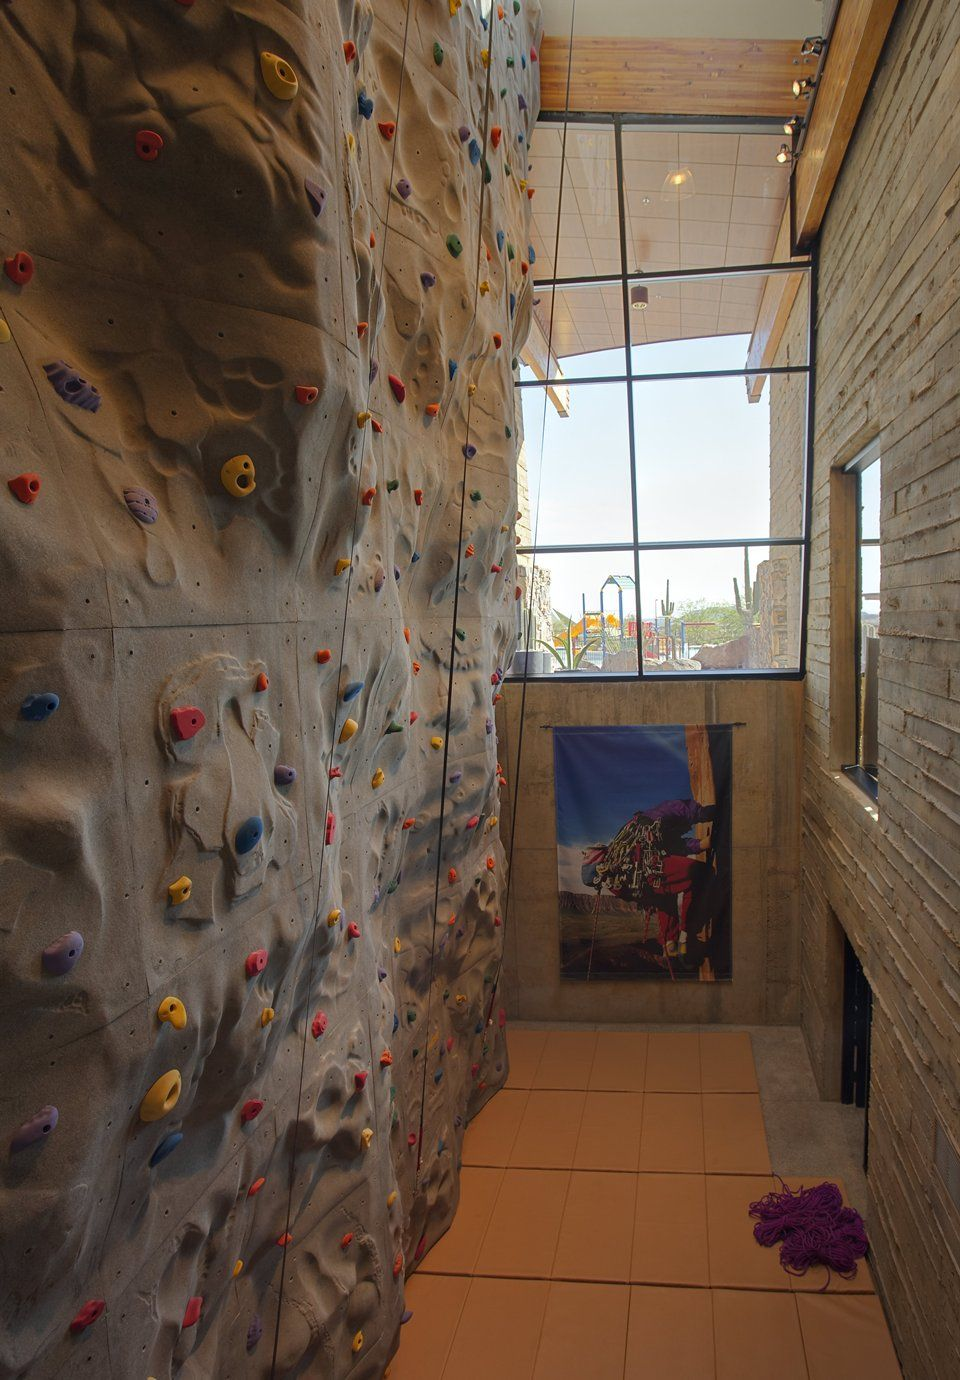 Home Rock Climbing Wall Design i like that platform bed easy cheap and provides storage underneath Exterior Cool Home Climbing Wall Designs For Your Hobby Residental Wonderful Home Interior Design